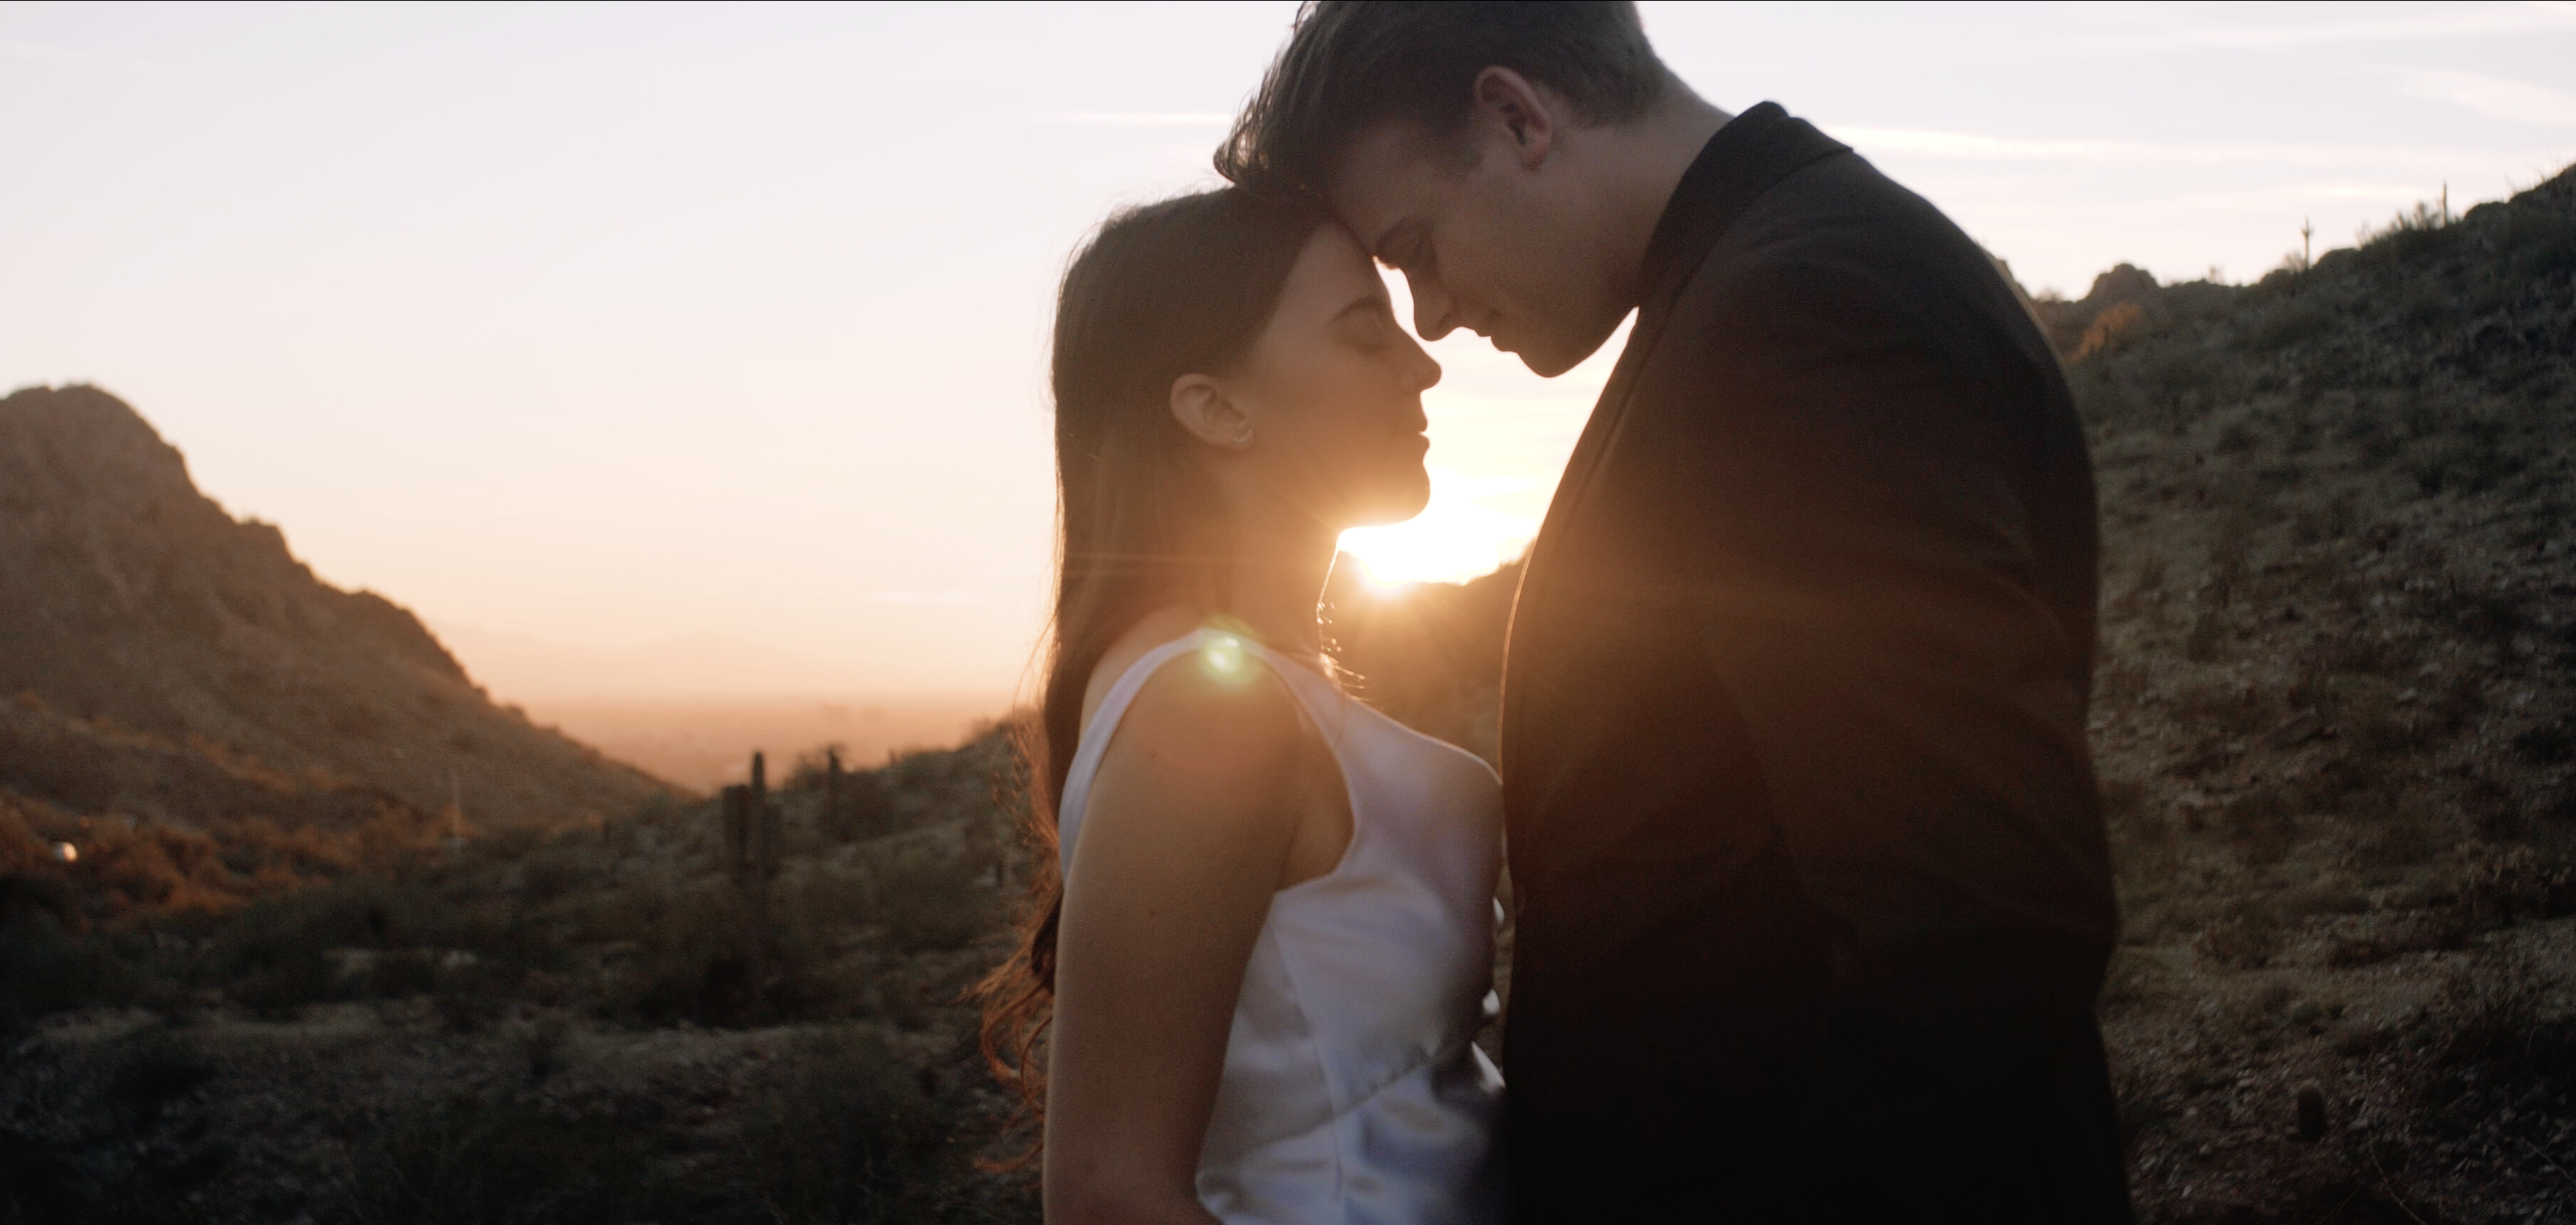 Cayleigh + Gabe | Paradise Valley, Arizona | a family home